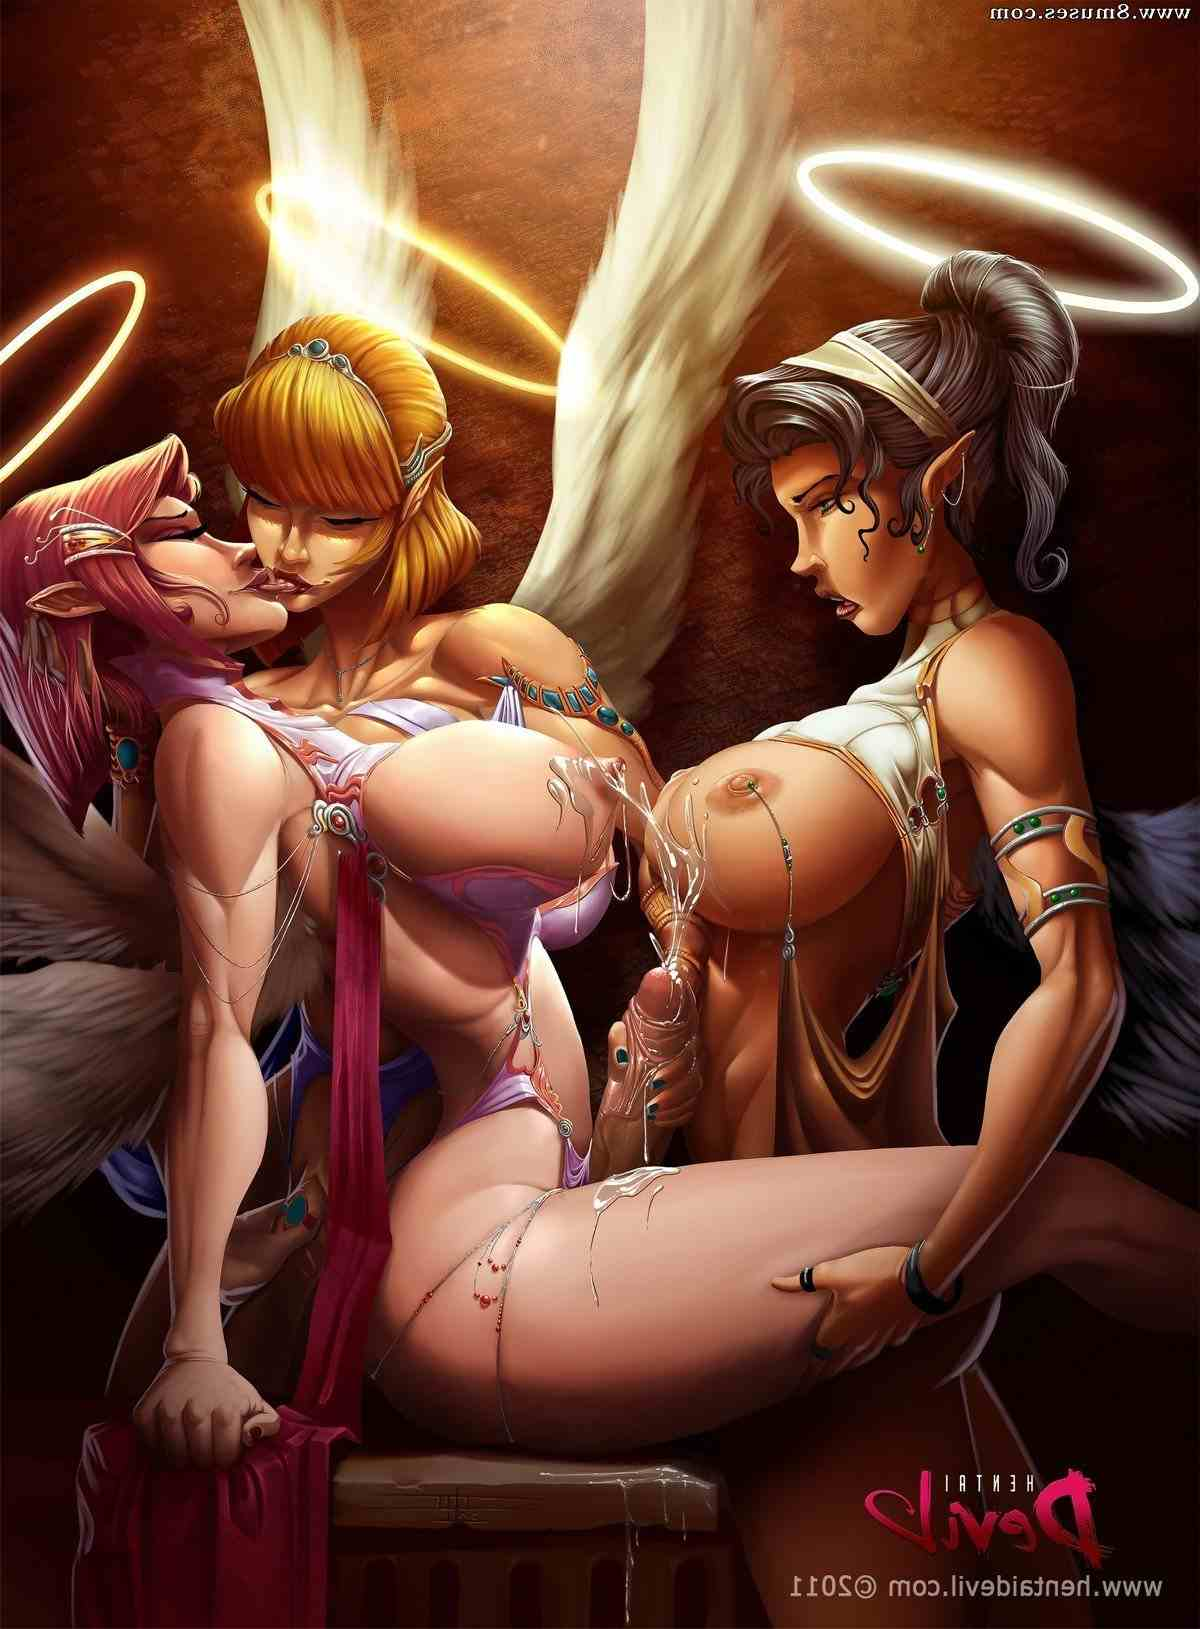 Taboolicious_xxx-Comics/Art/year-2011 year_2011__8muses_-_Sex_and_Porn_Comics_8.jpg